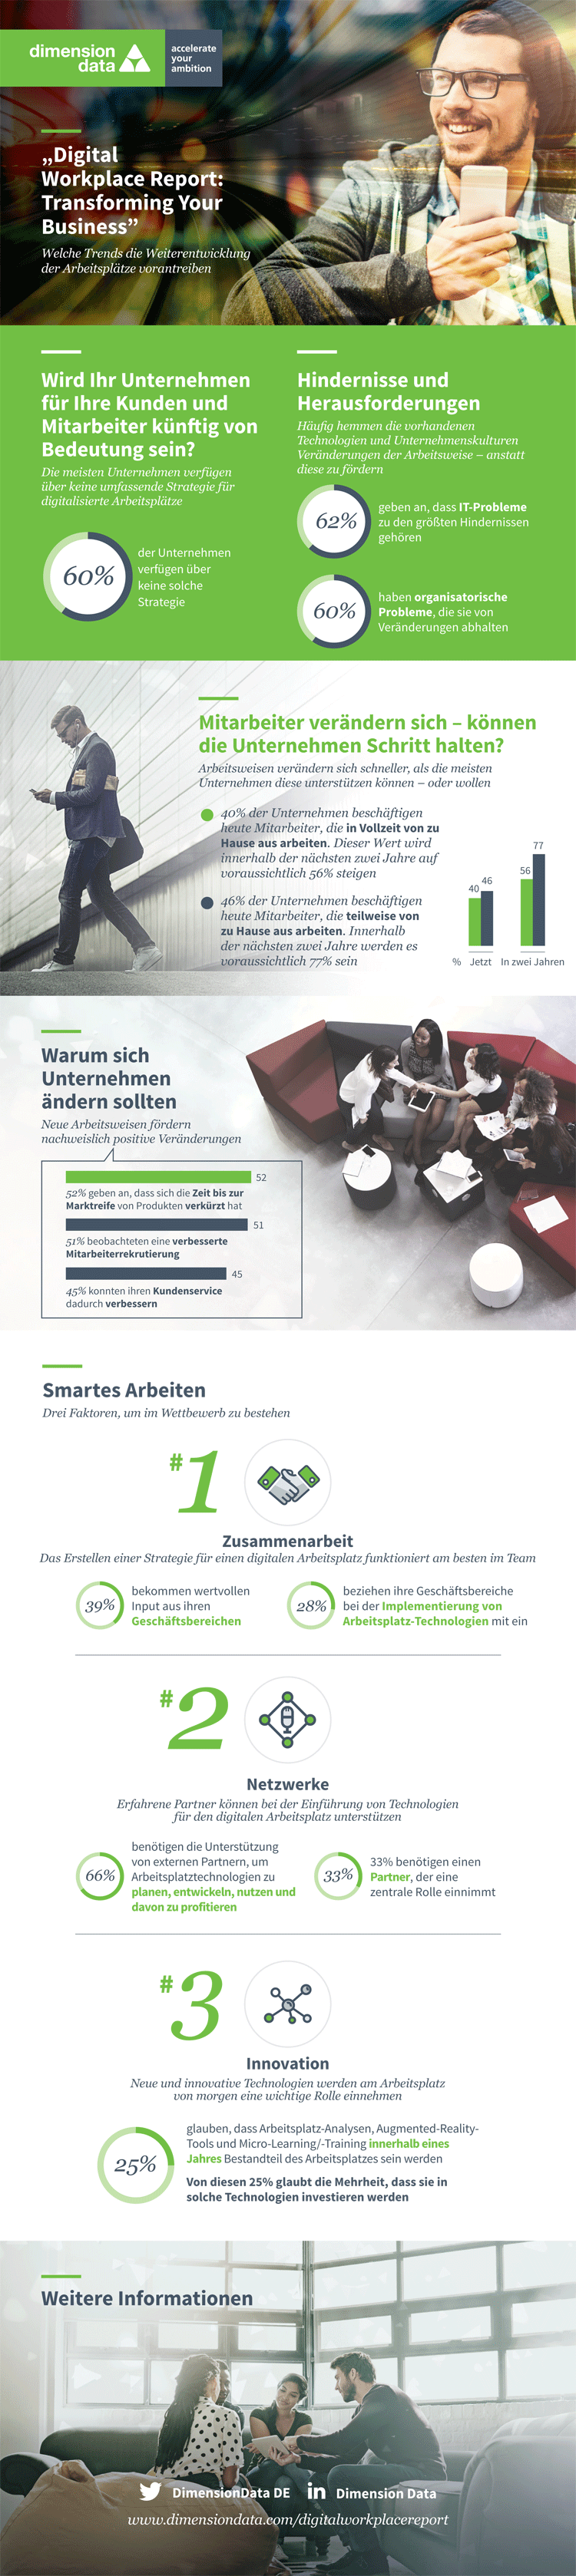 Infografik: Digitale Transformation am Arbeitsplatz